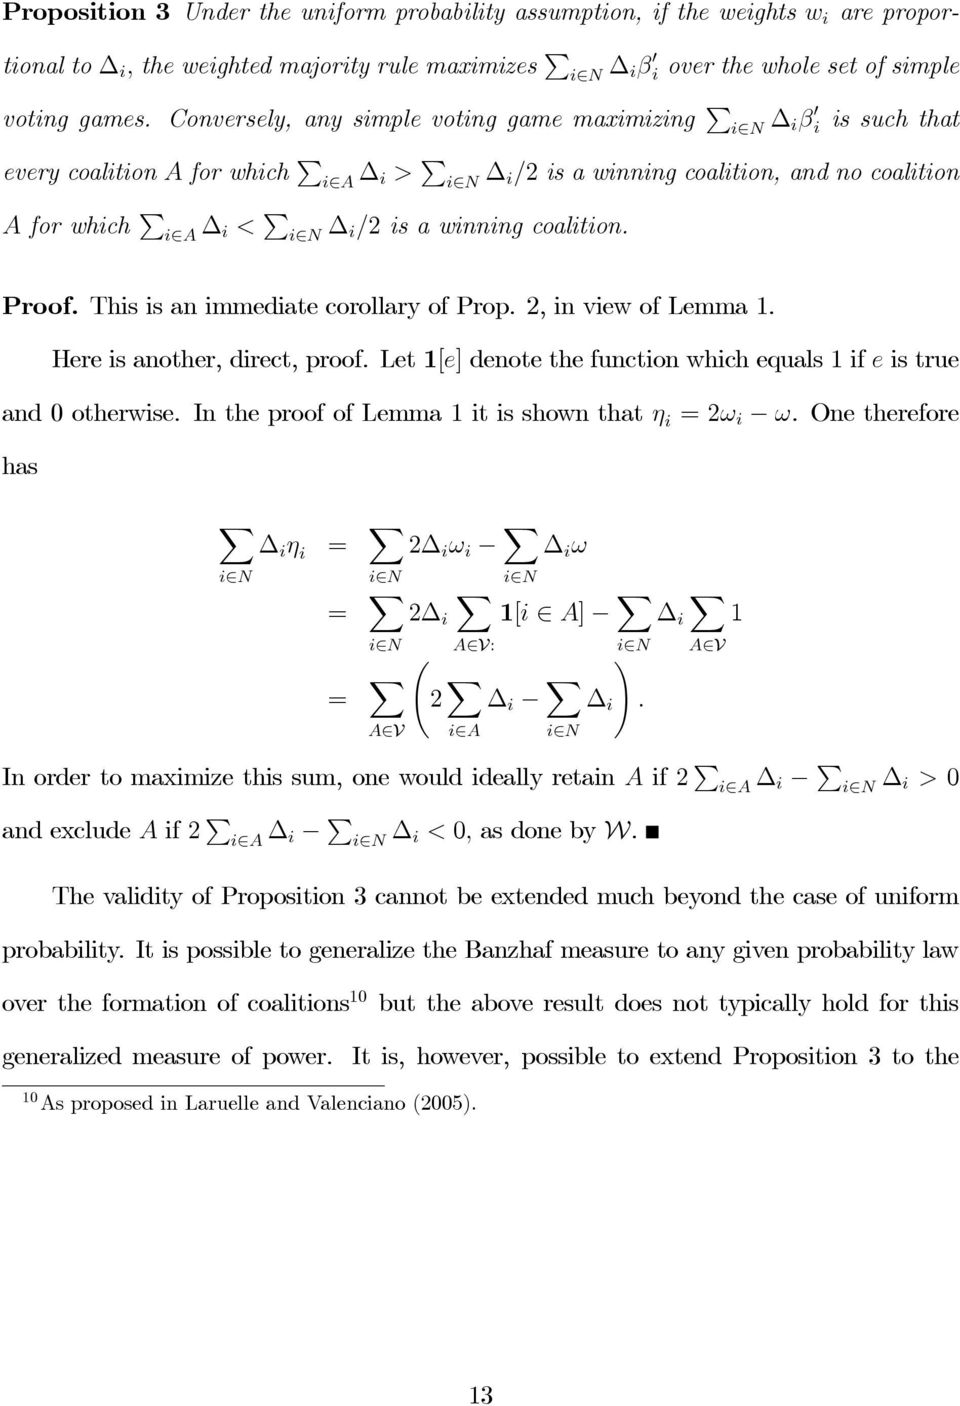 winning coalition. Proof. This is an immediate corollary of Prop. 2, in view of Lemma 1. Here is another, direct, proof. Let 1[e] denote the function which equals 1 if e is true and 0 otherwise.